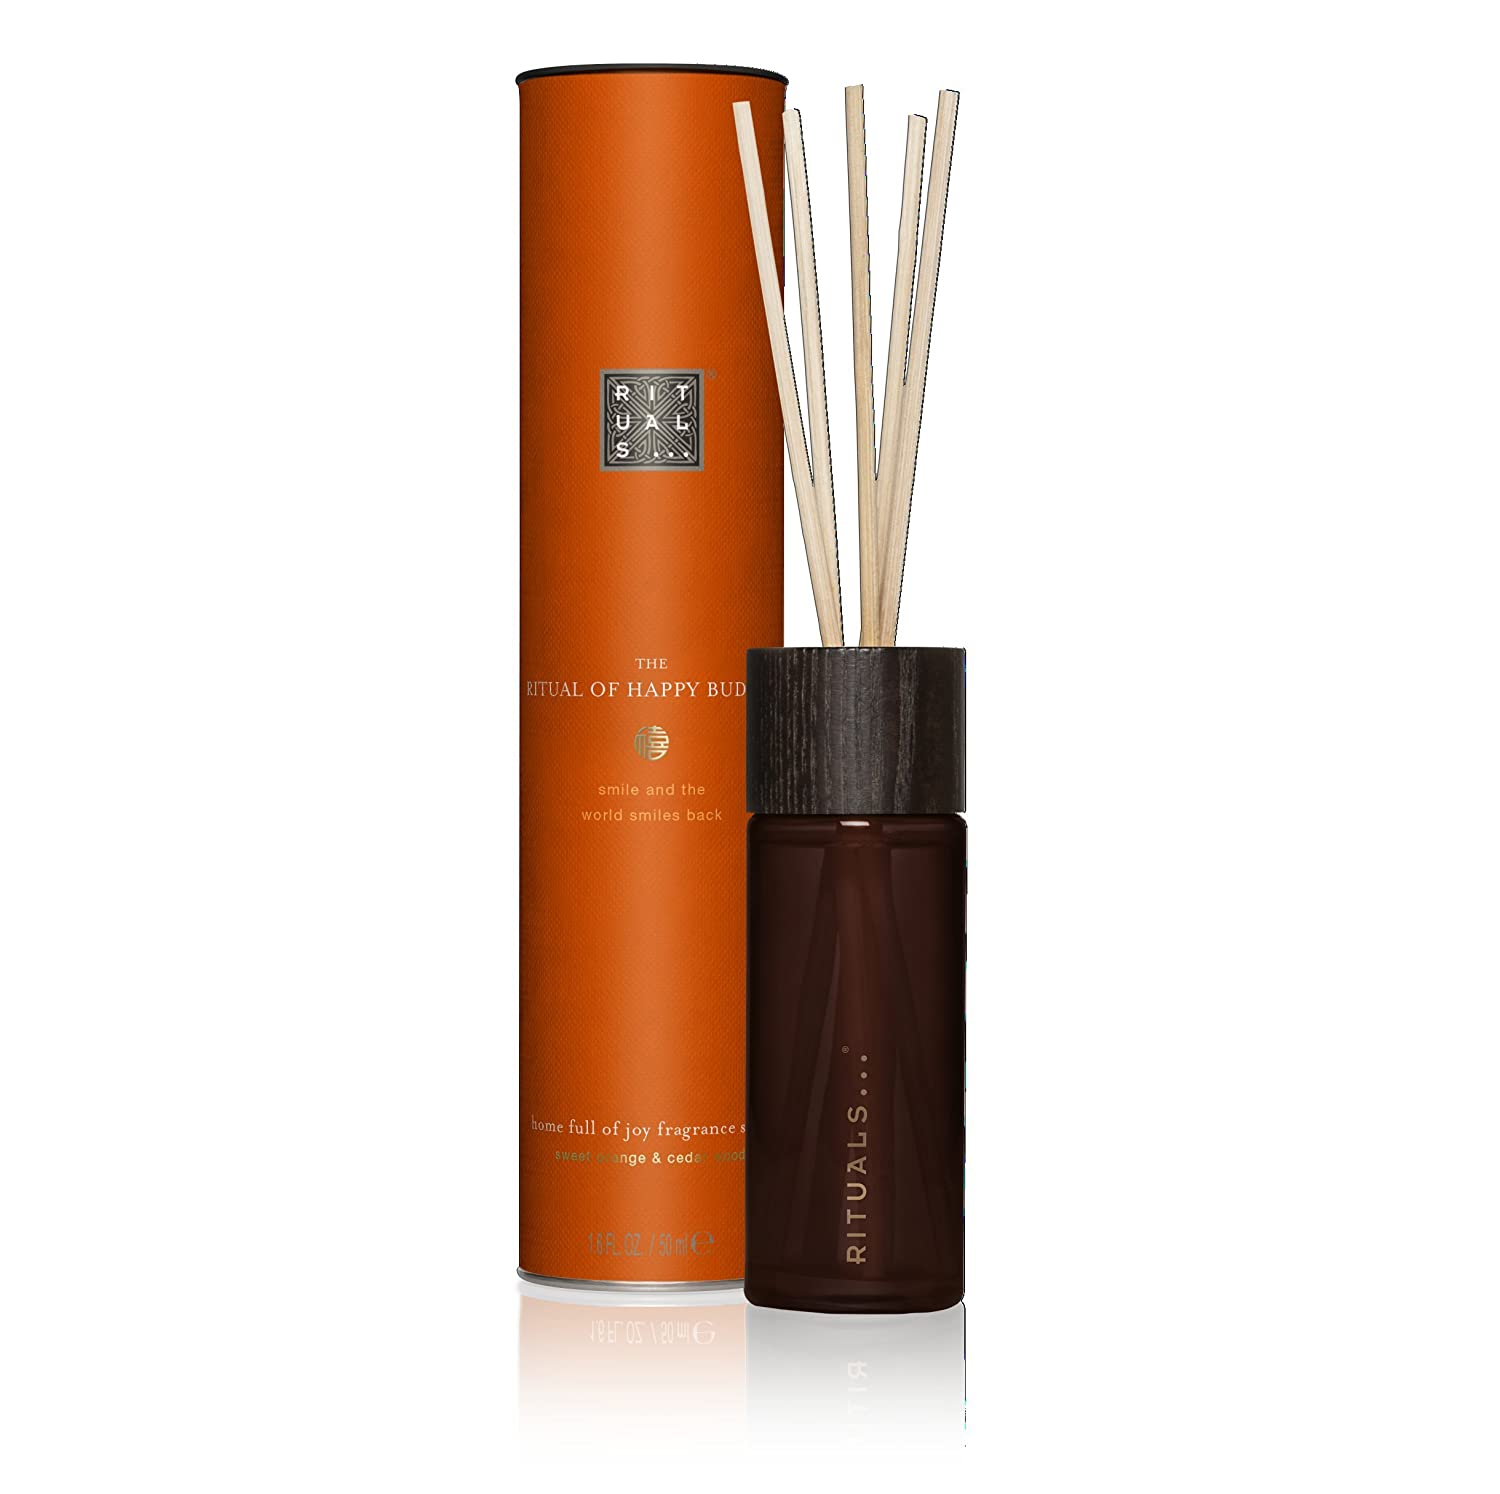 RITUALS The Rituals of Happy Buddha Mini Fragrance Sticks, 1.6 Fl oz